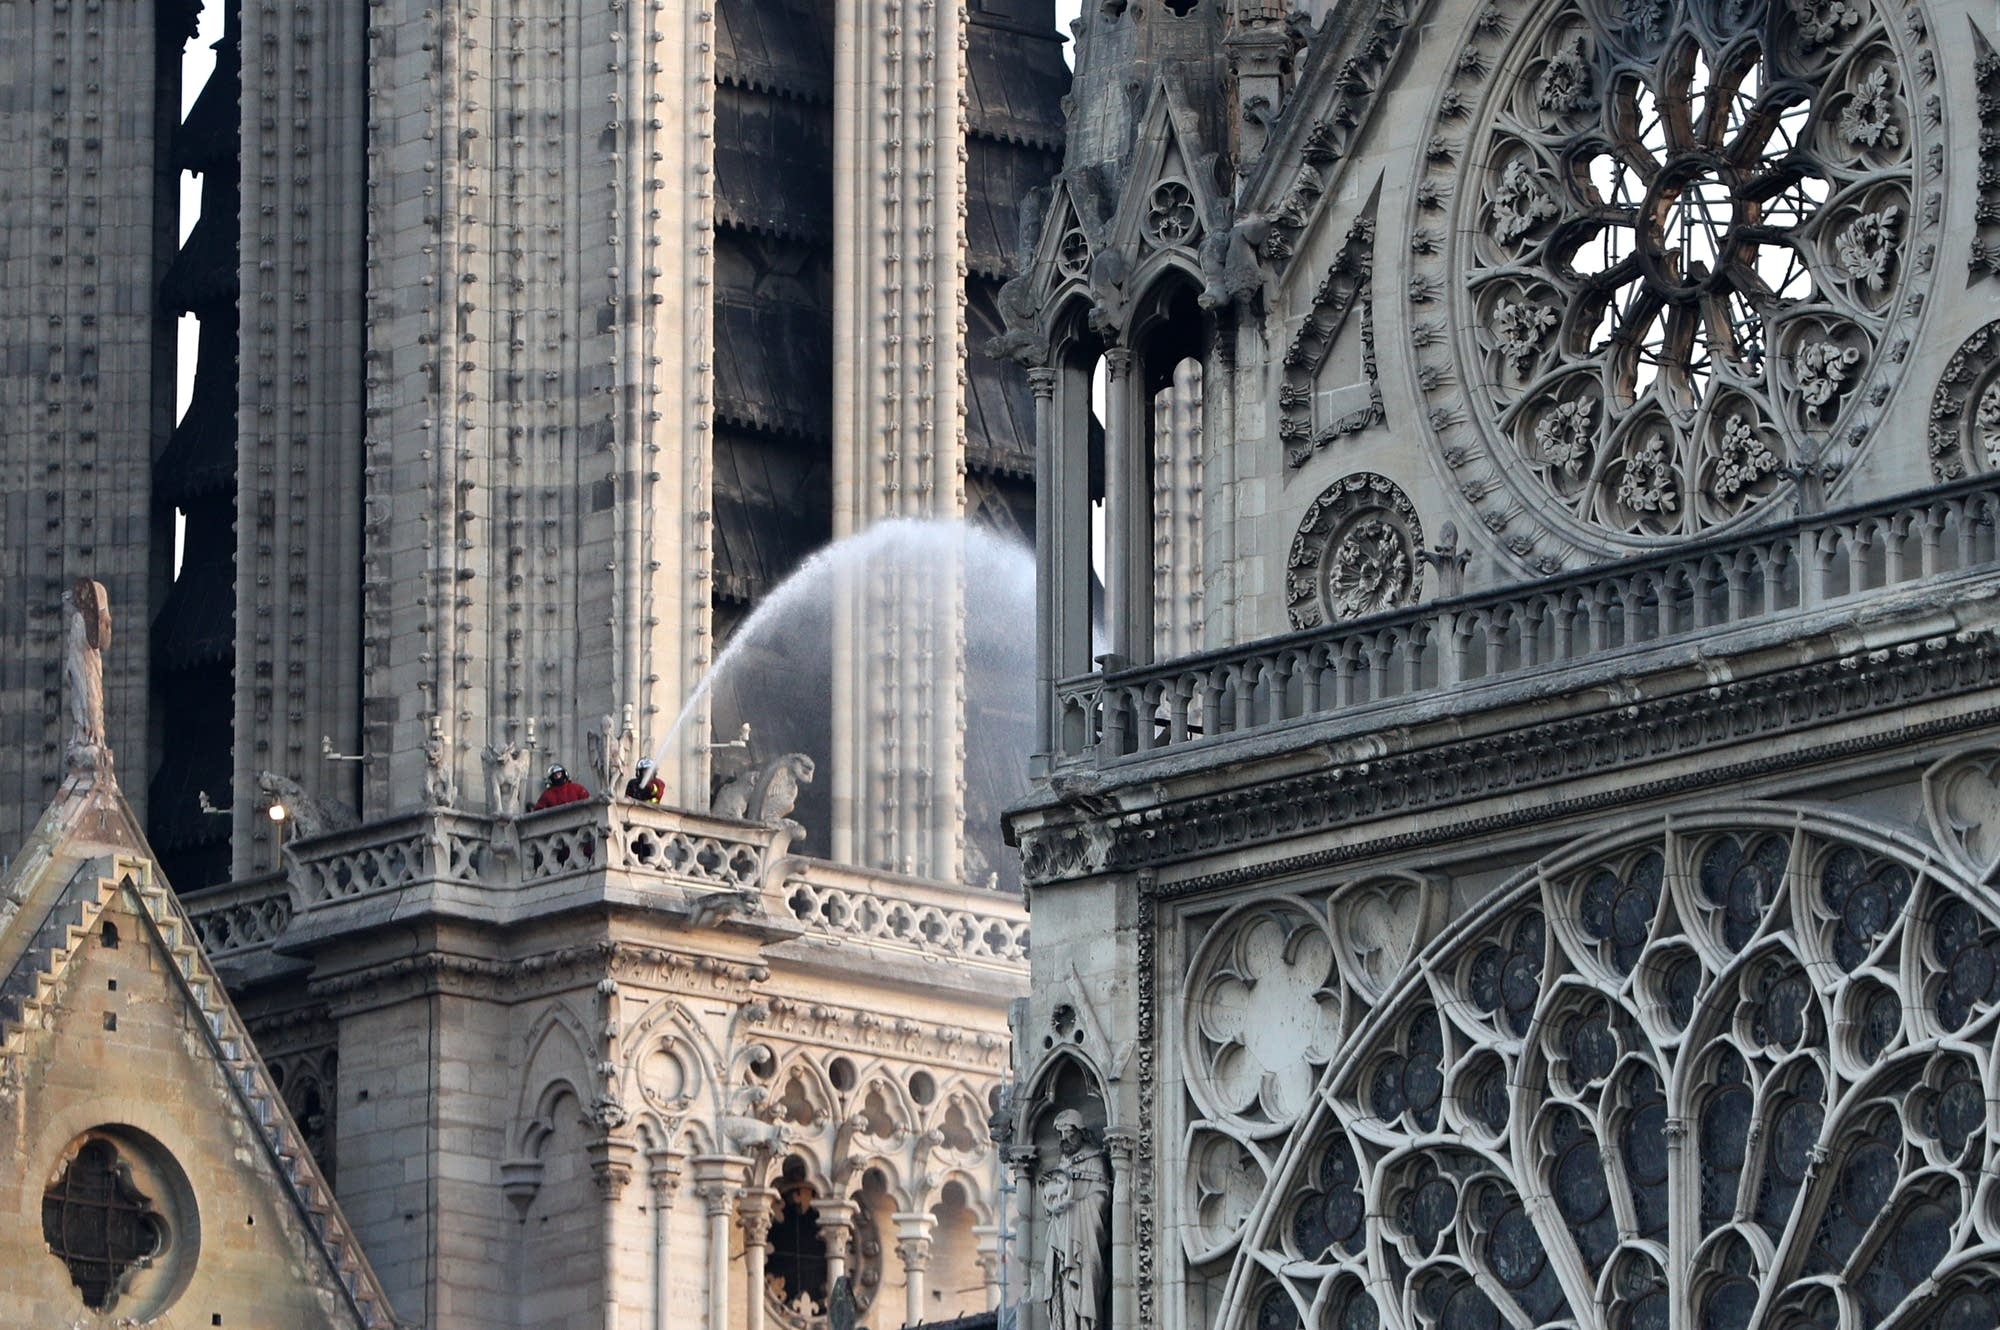 A firefighter hoses down a section of the Notre Dame cathedral.